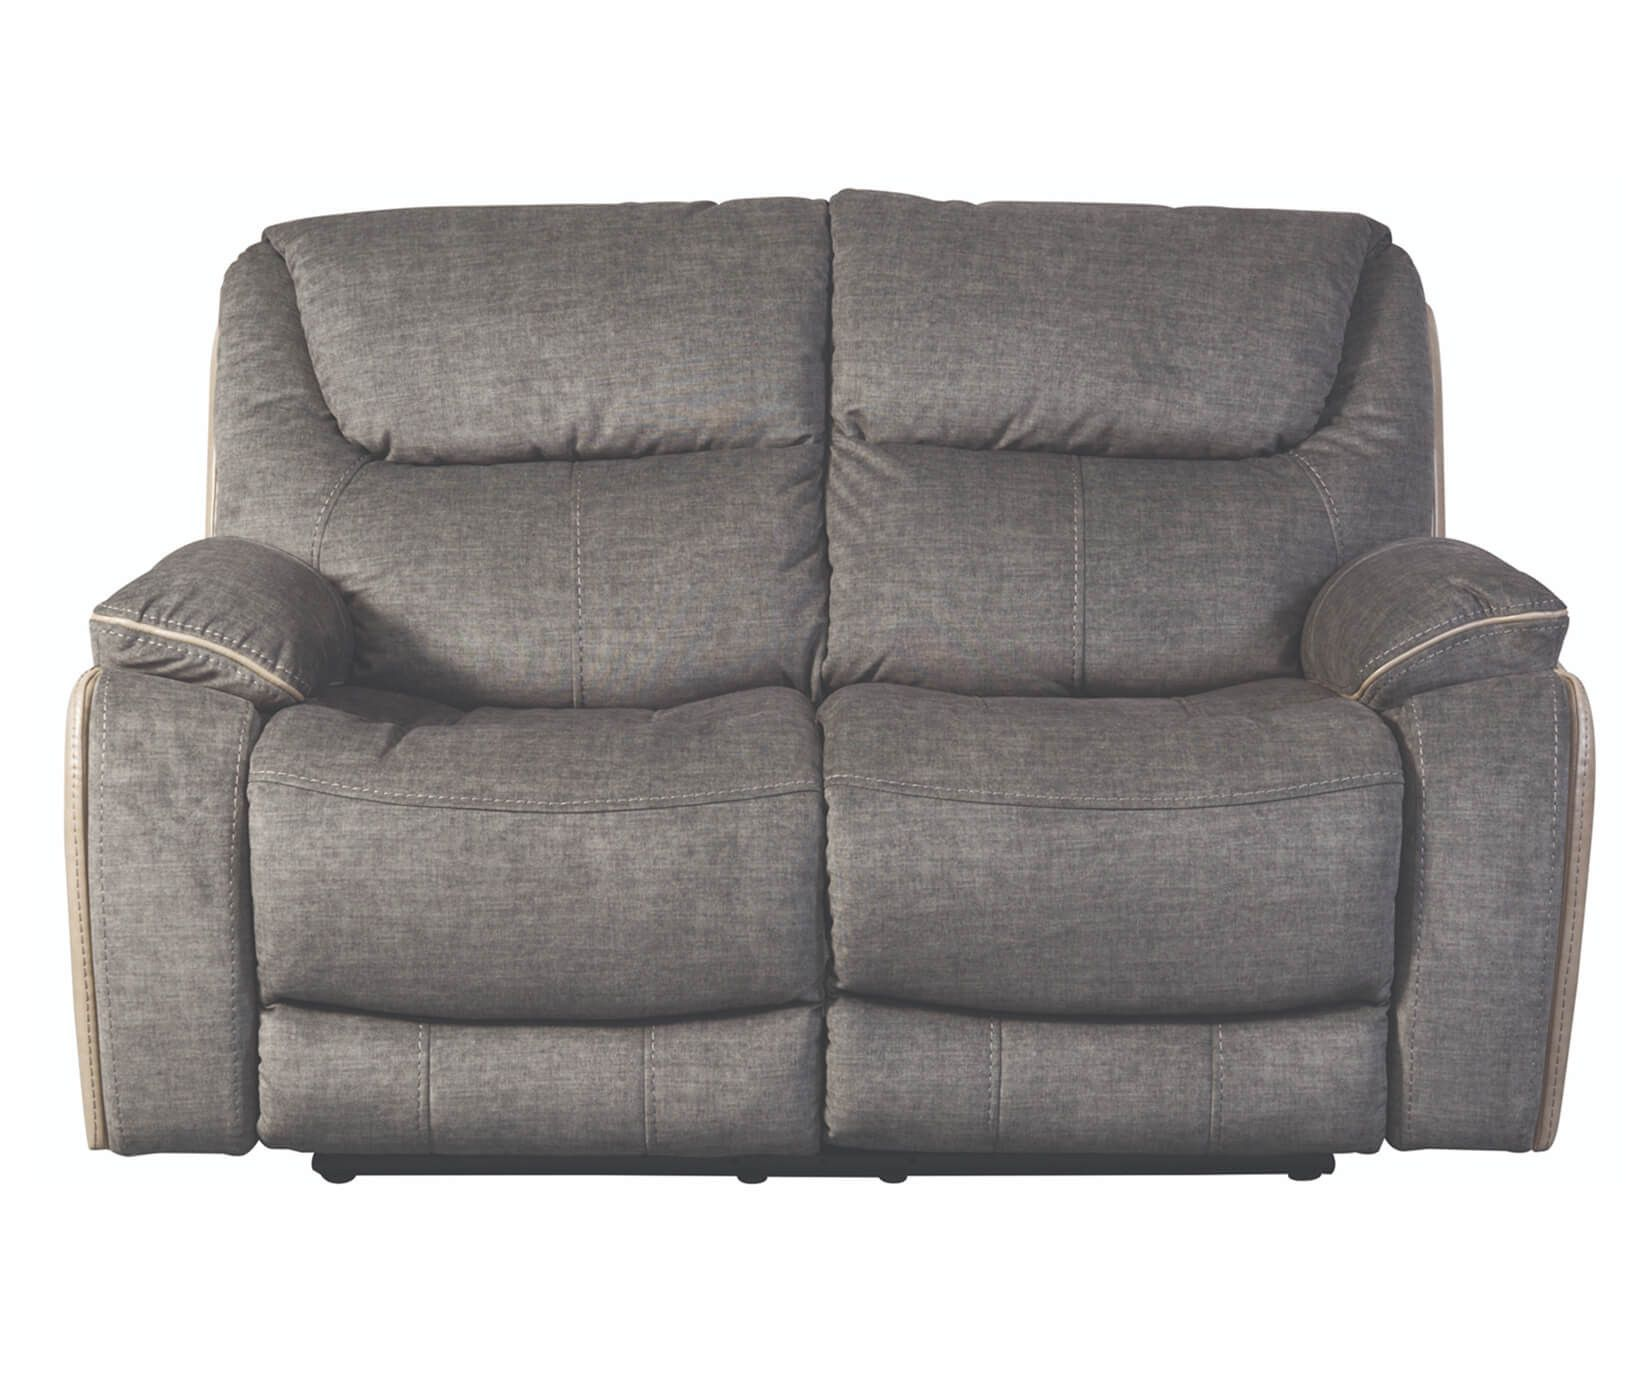 Reclining Sofas For Your Living Es Furniture Direct Uk